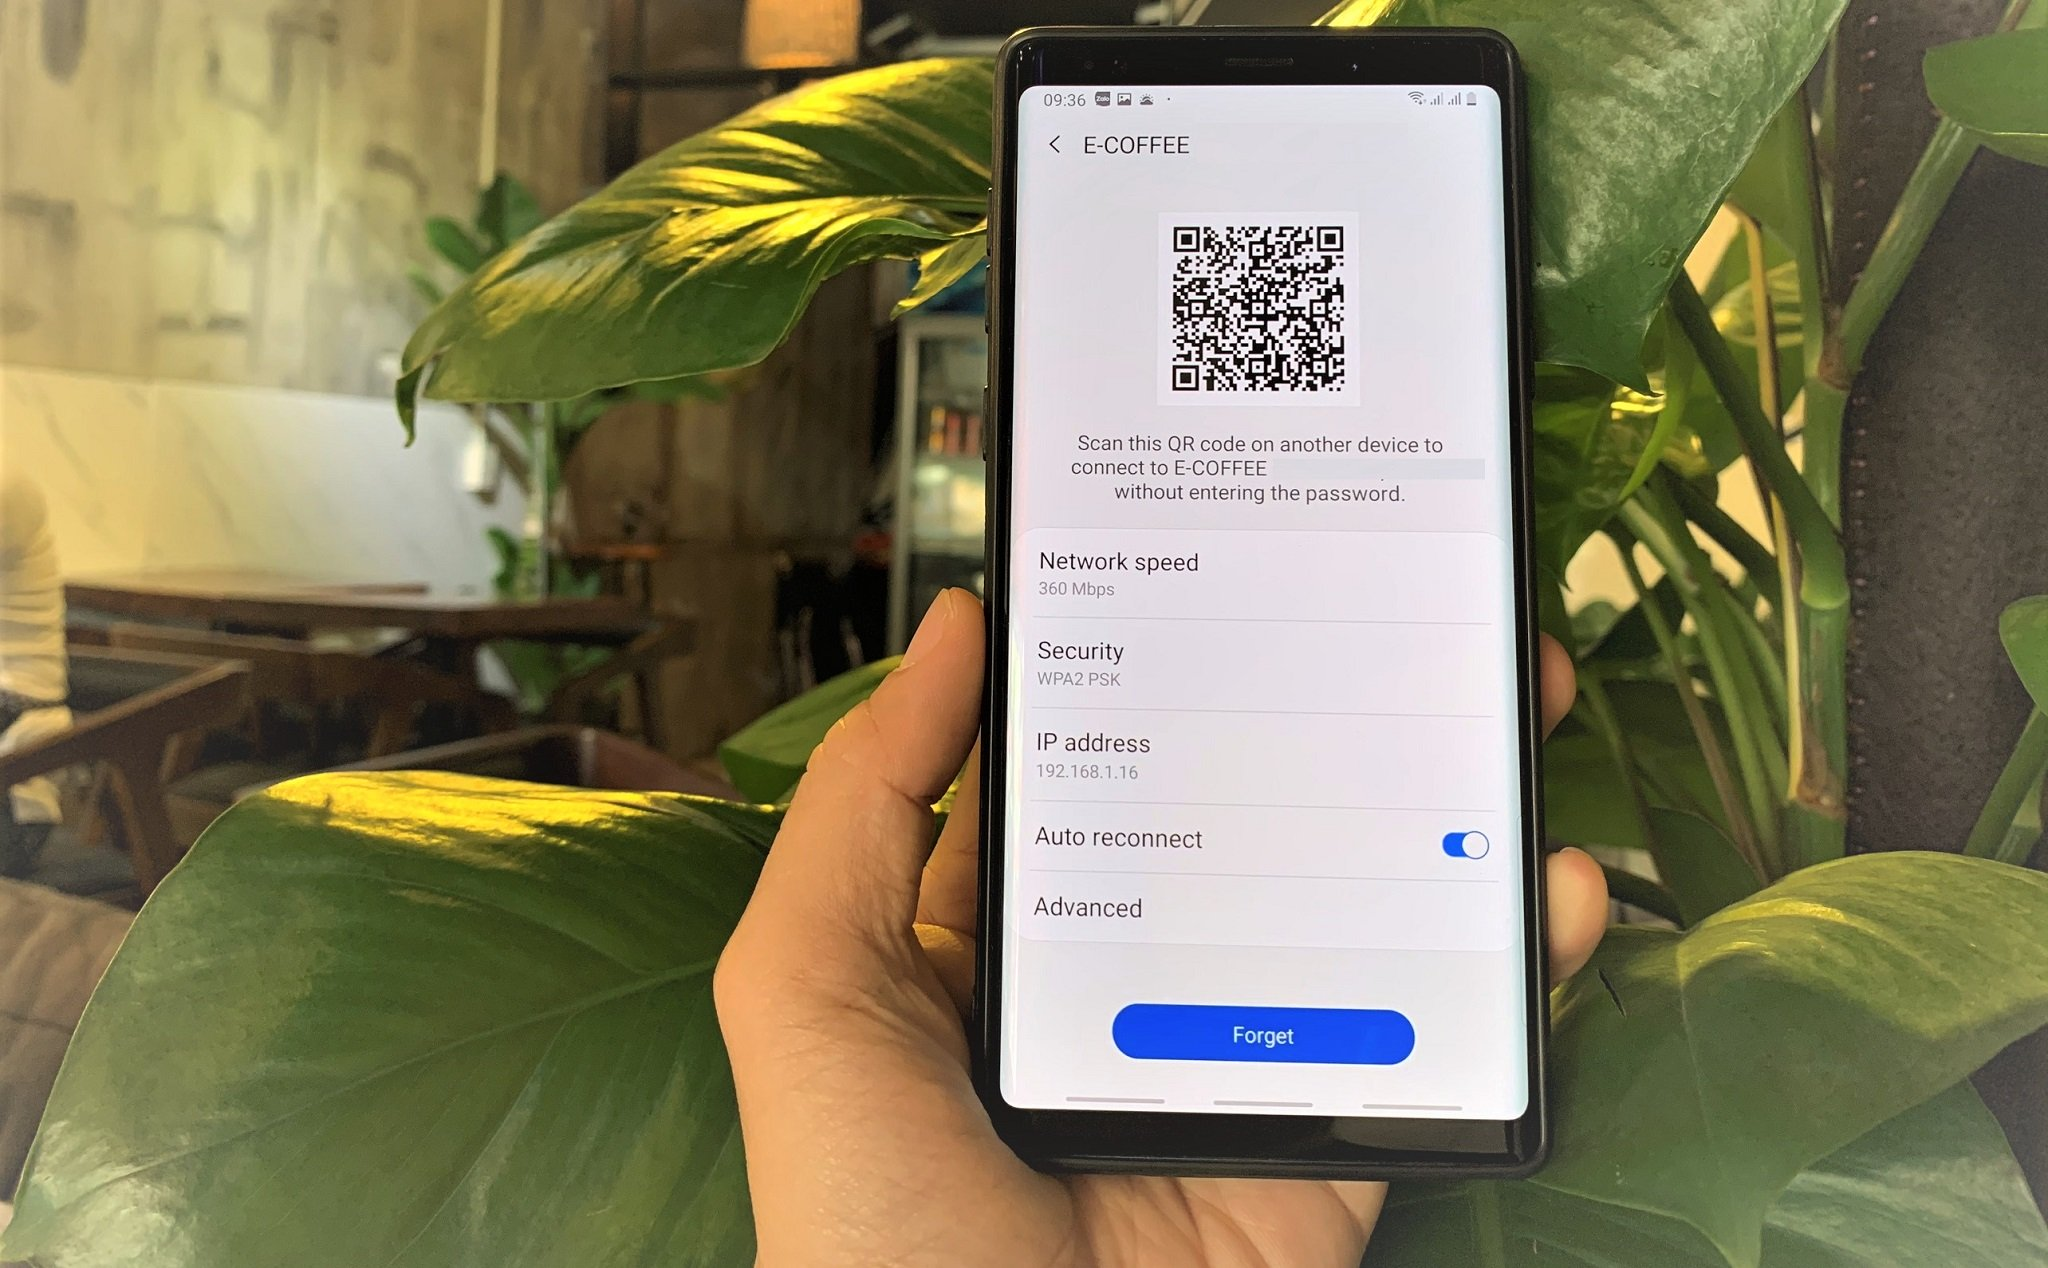 [Cơ bản/Android] Scan the QR code to share WiFi without typing passwords